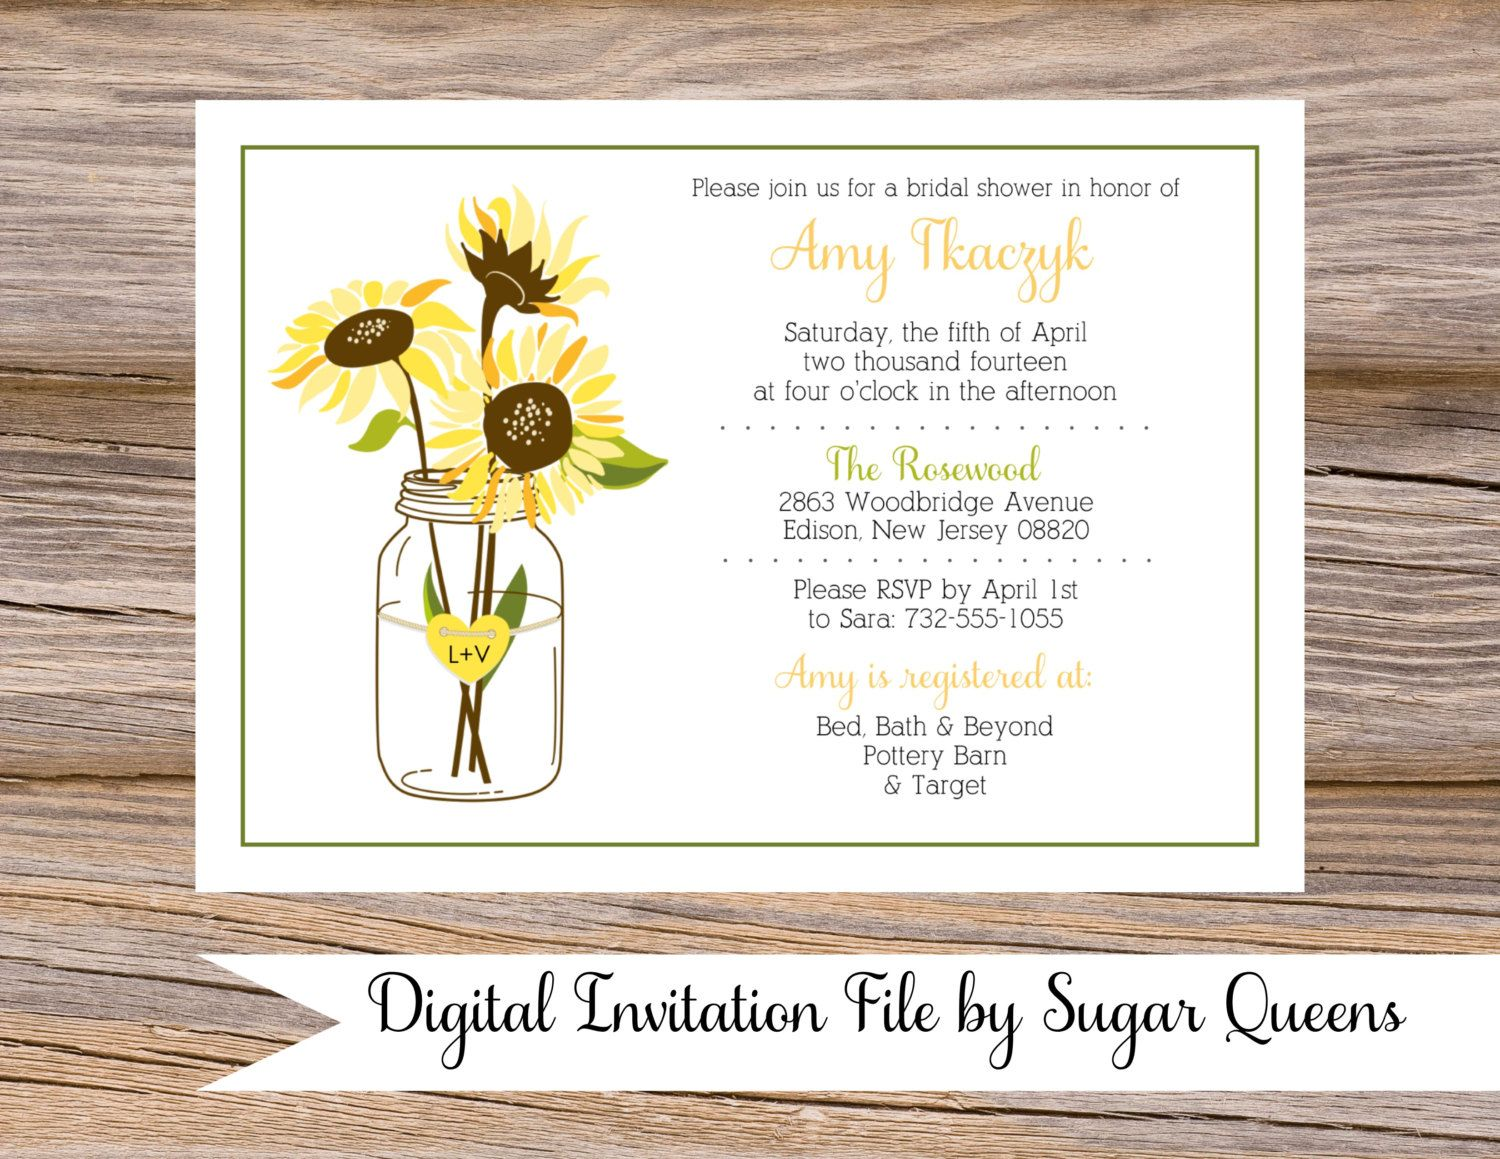 Mason jar sunflowers bridal shower invitations diy by sugarqueens mason jar sunflowers bridal shower invitations diy by sugarqueens filmwisefo